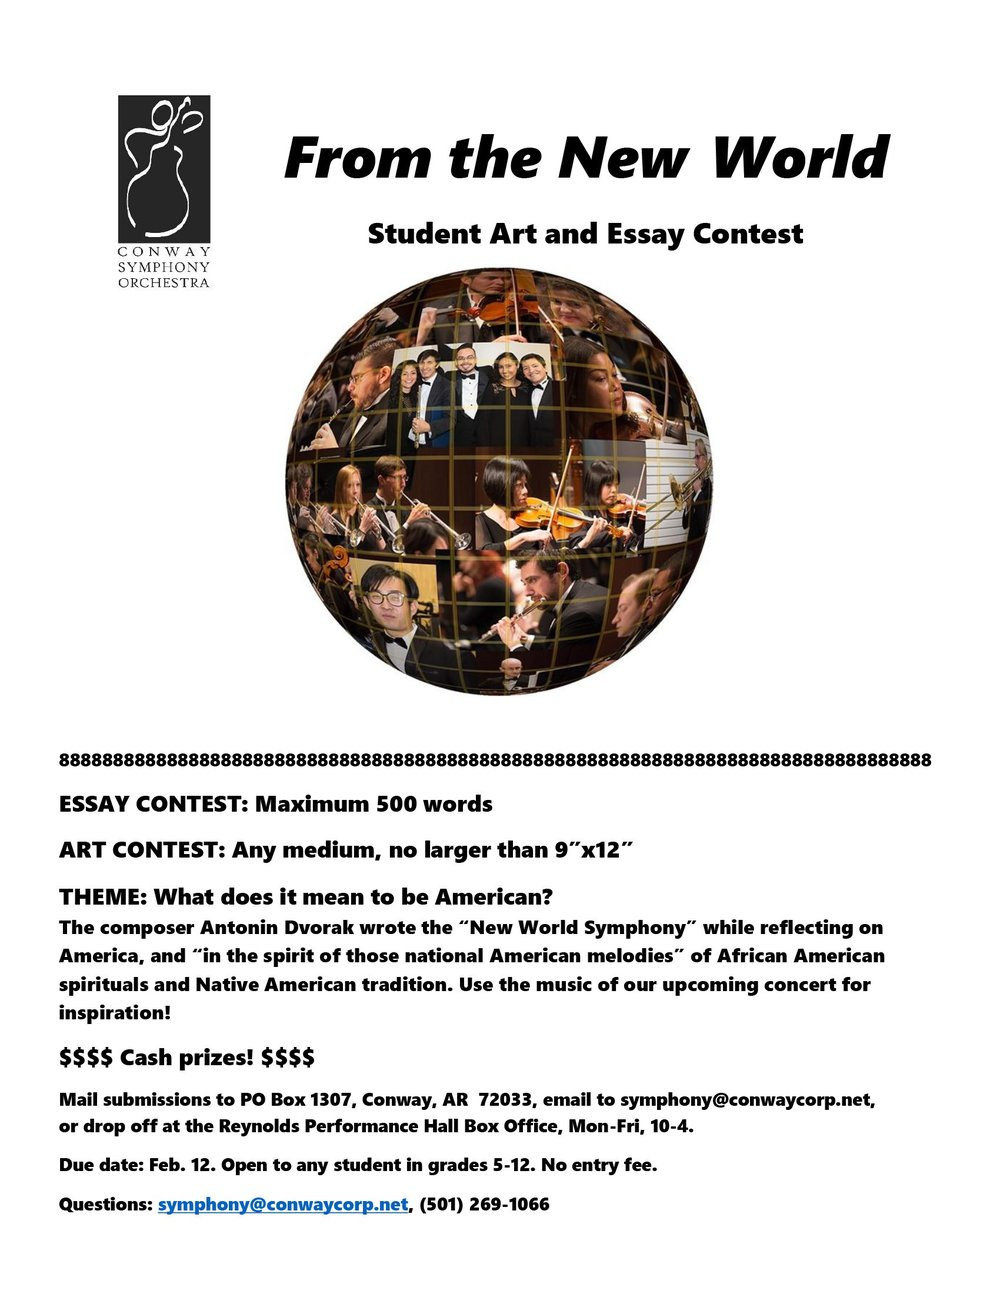 student contest flier From the New World.jpg